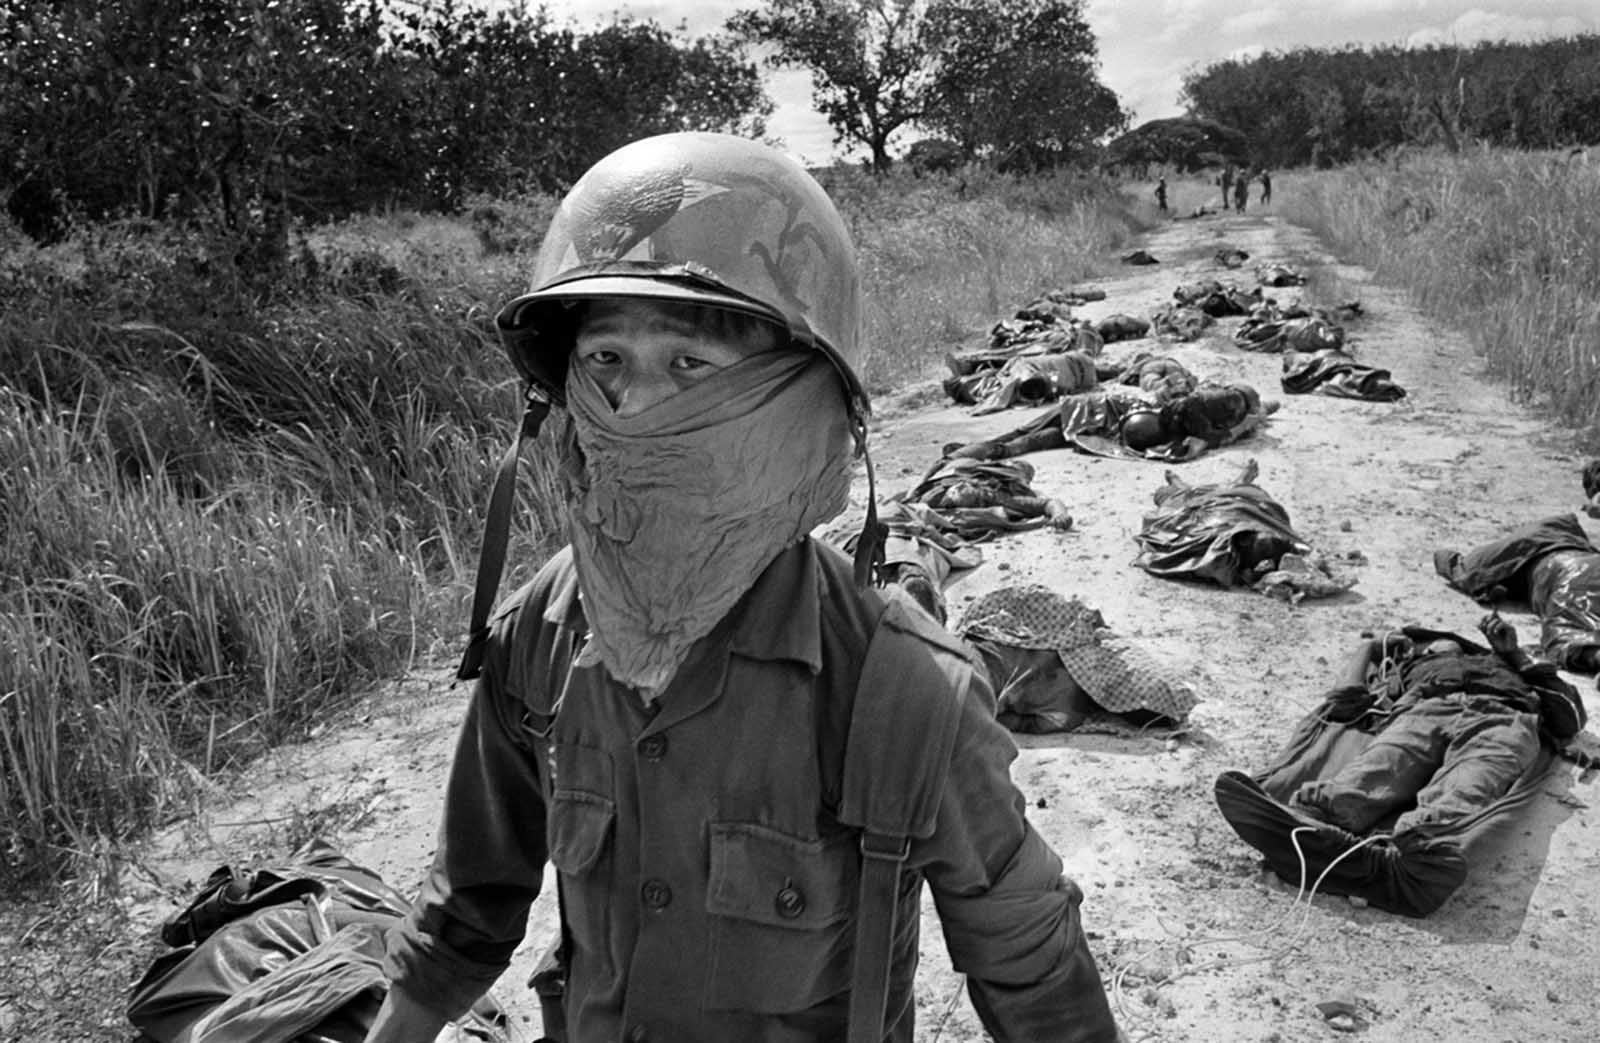 A Vietnamese litter bearer wears a face mask to keep out the smell as he passes the bodies of U.S. and Vietnamese soldiers killed in fighting against the Viet Cong at the Michelin rubber plantation, about 45 miles northeast of Saigon, on November 27, 1965.